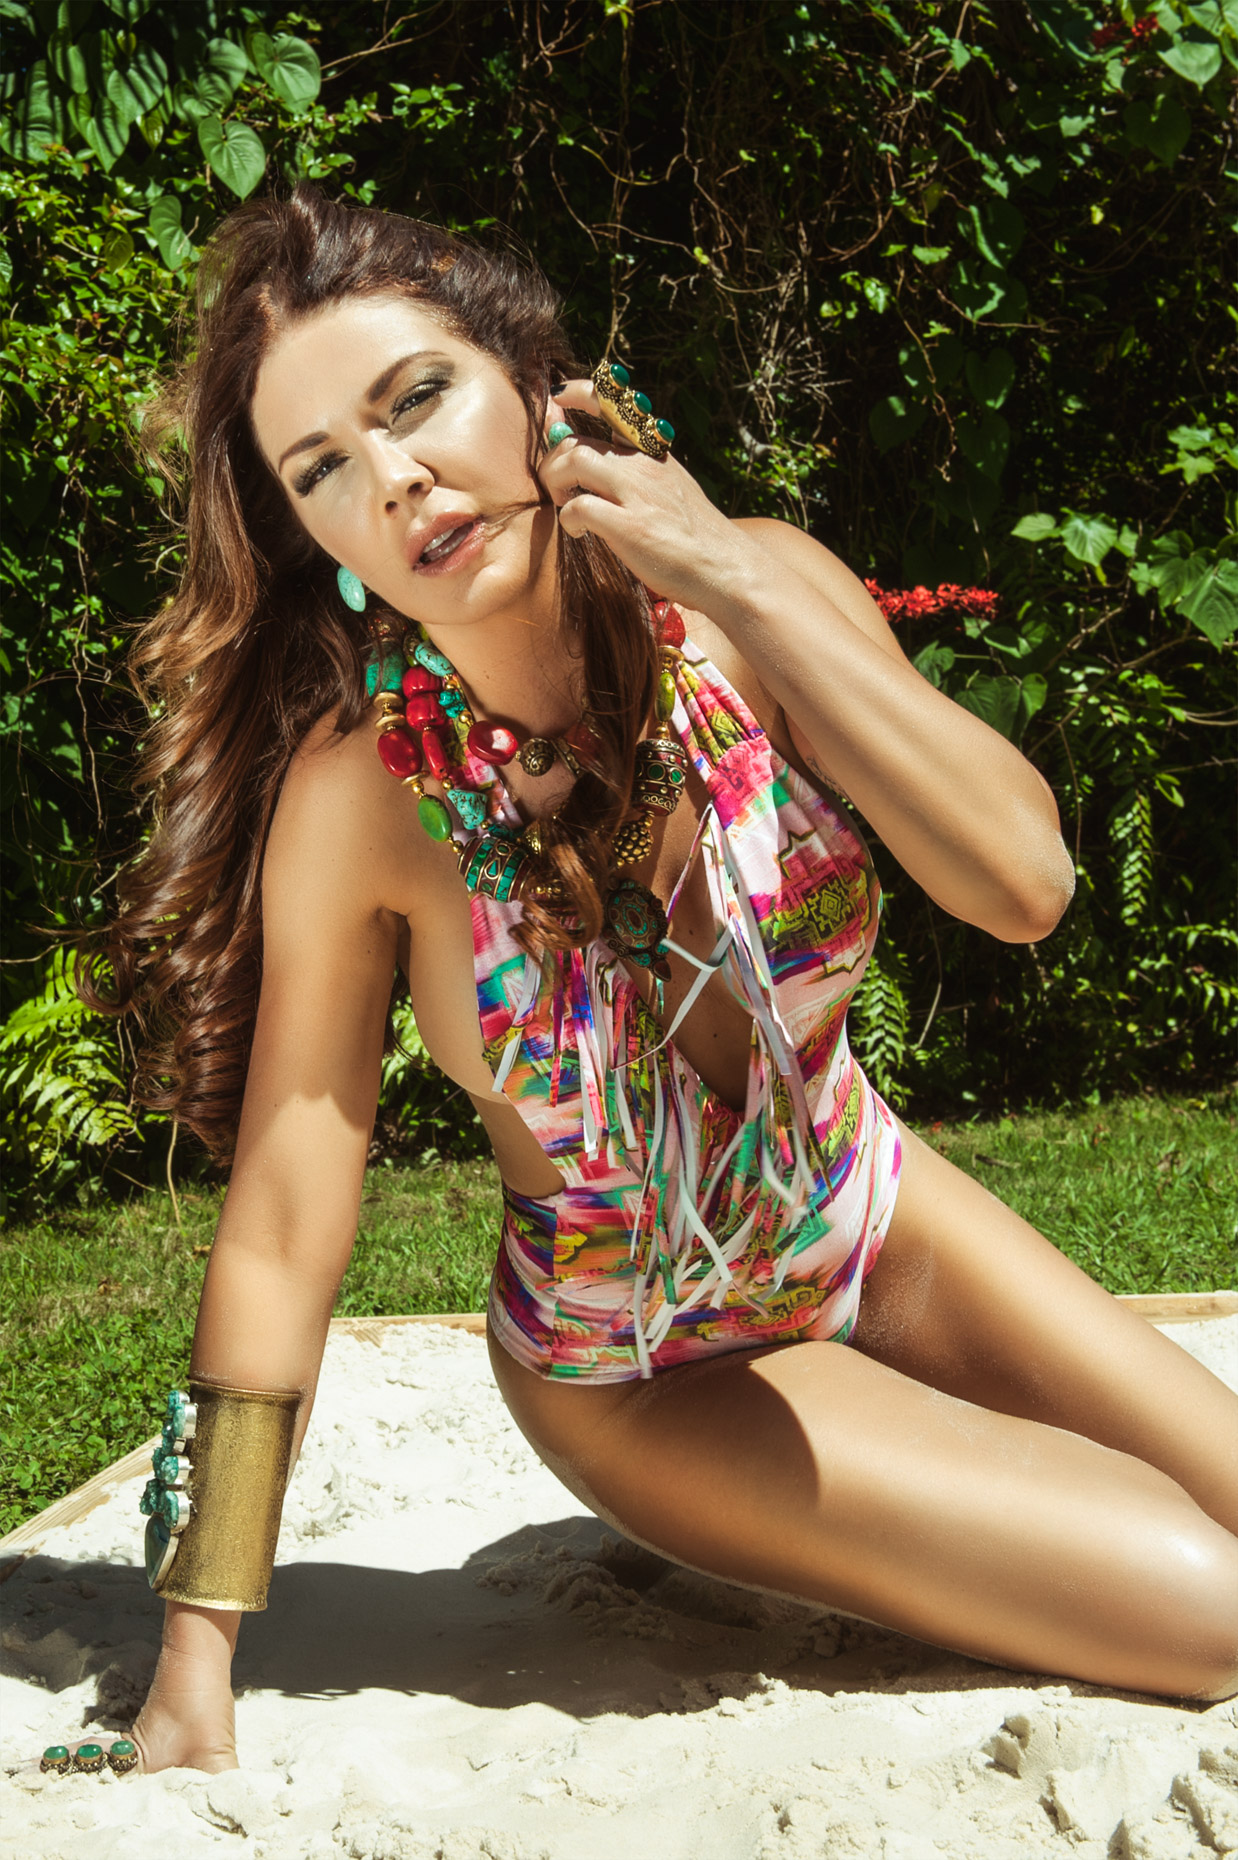 Shireen Sandoval - Bathing suit